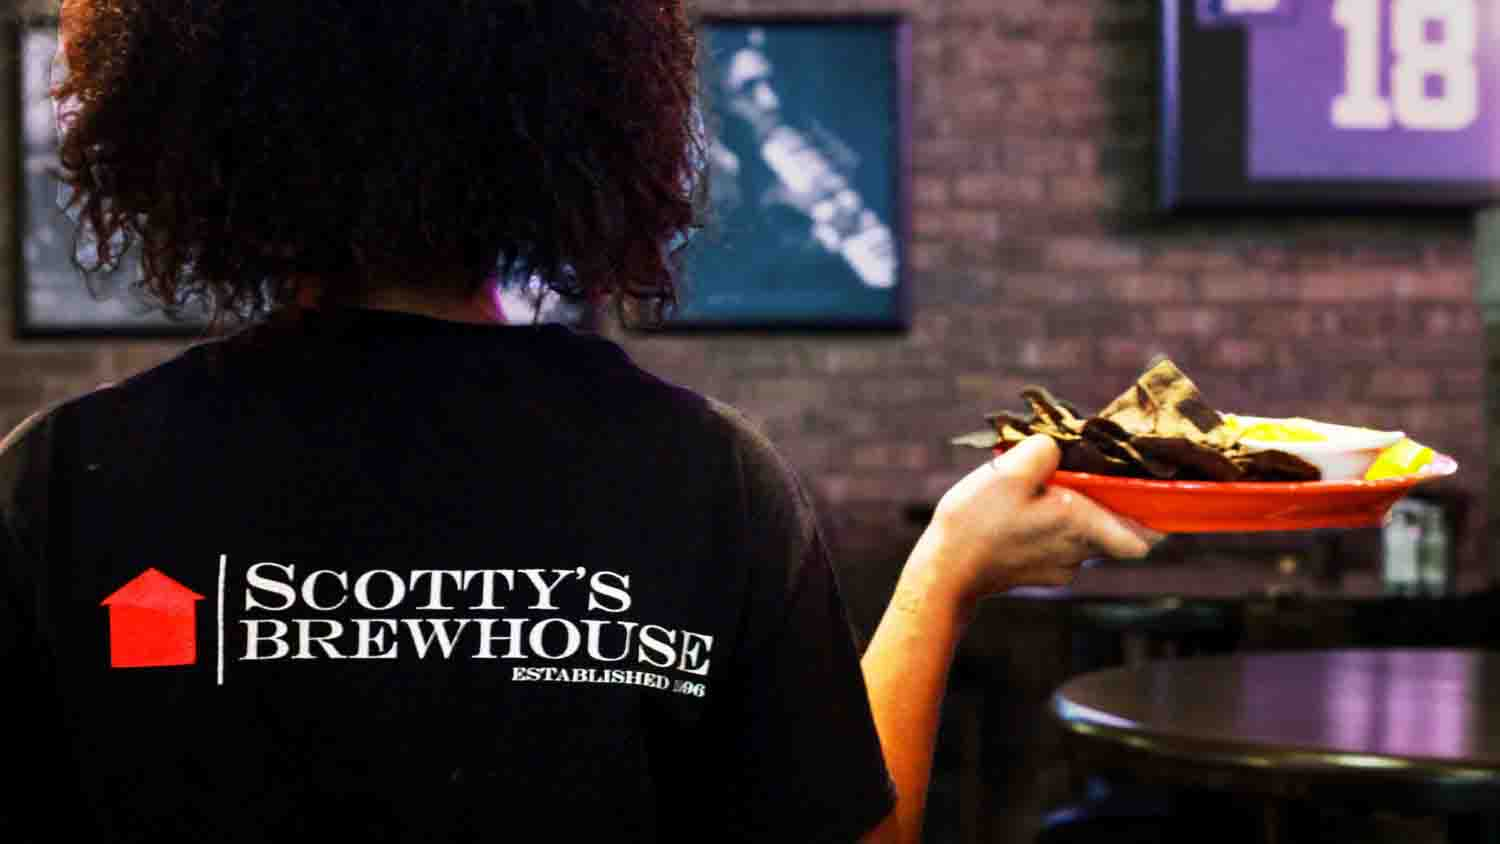 Scottys-brewhouse-2